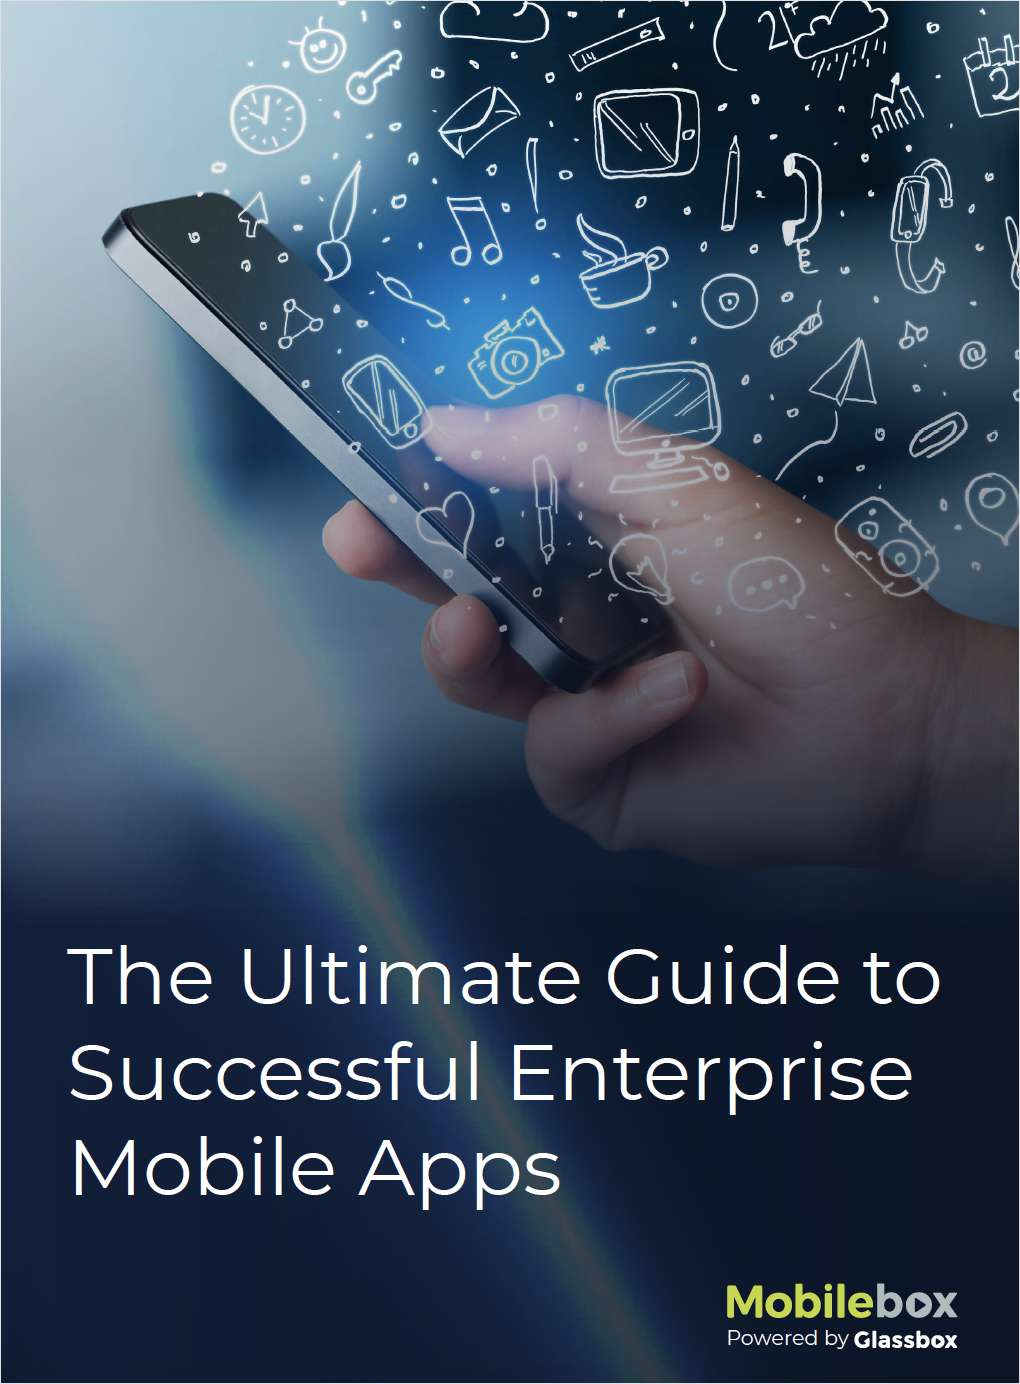 The Ultimate Guide to Successful Enterprise Mobile Apps